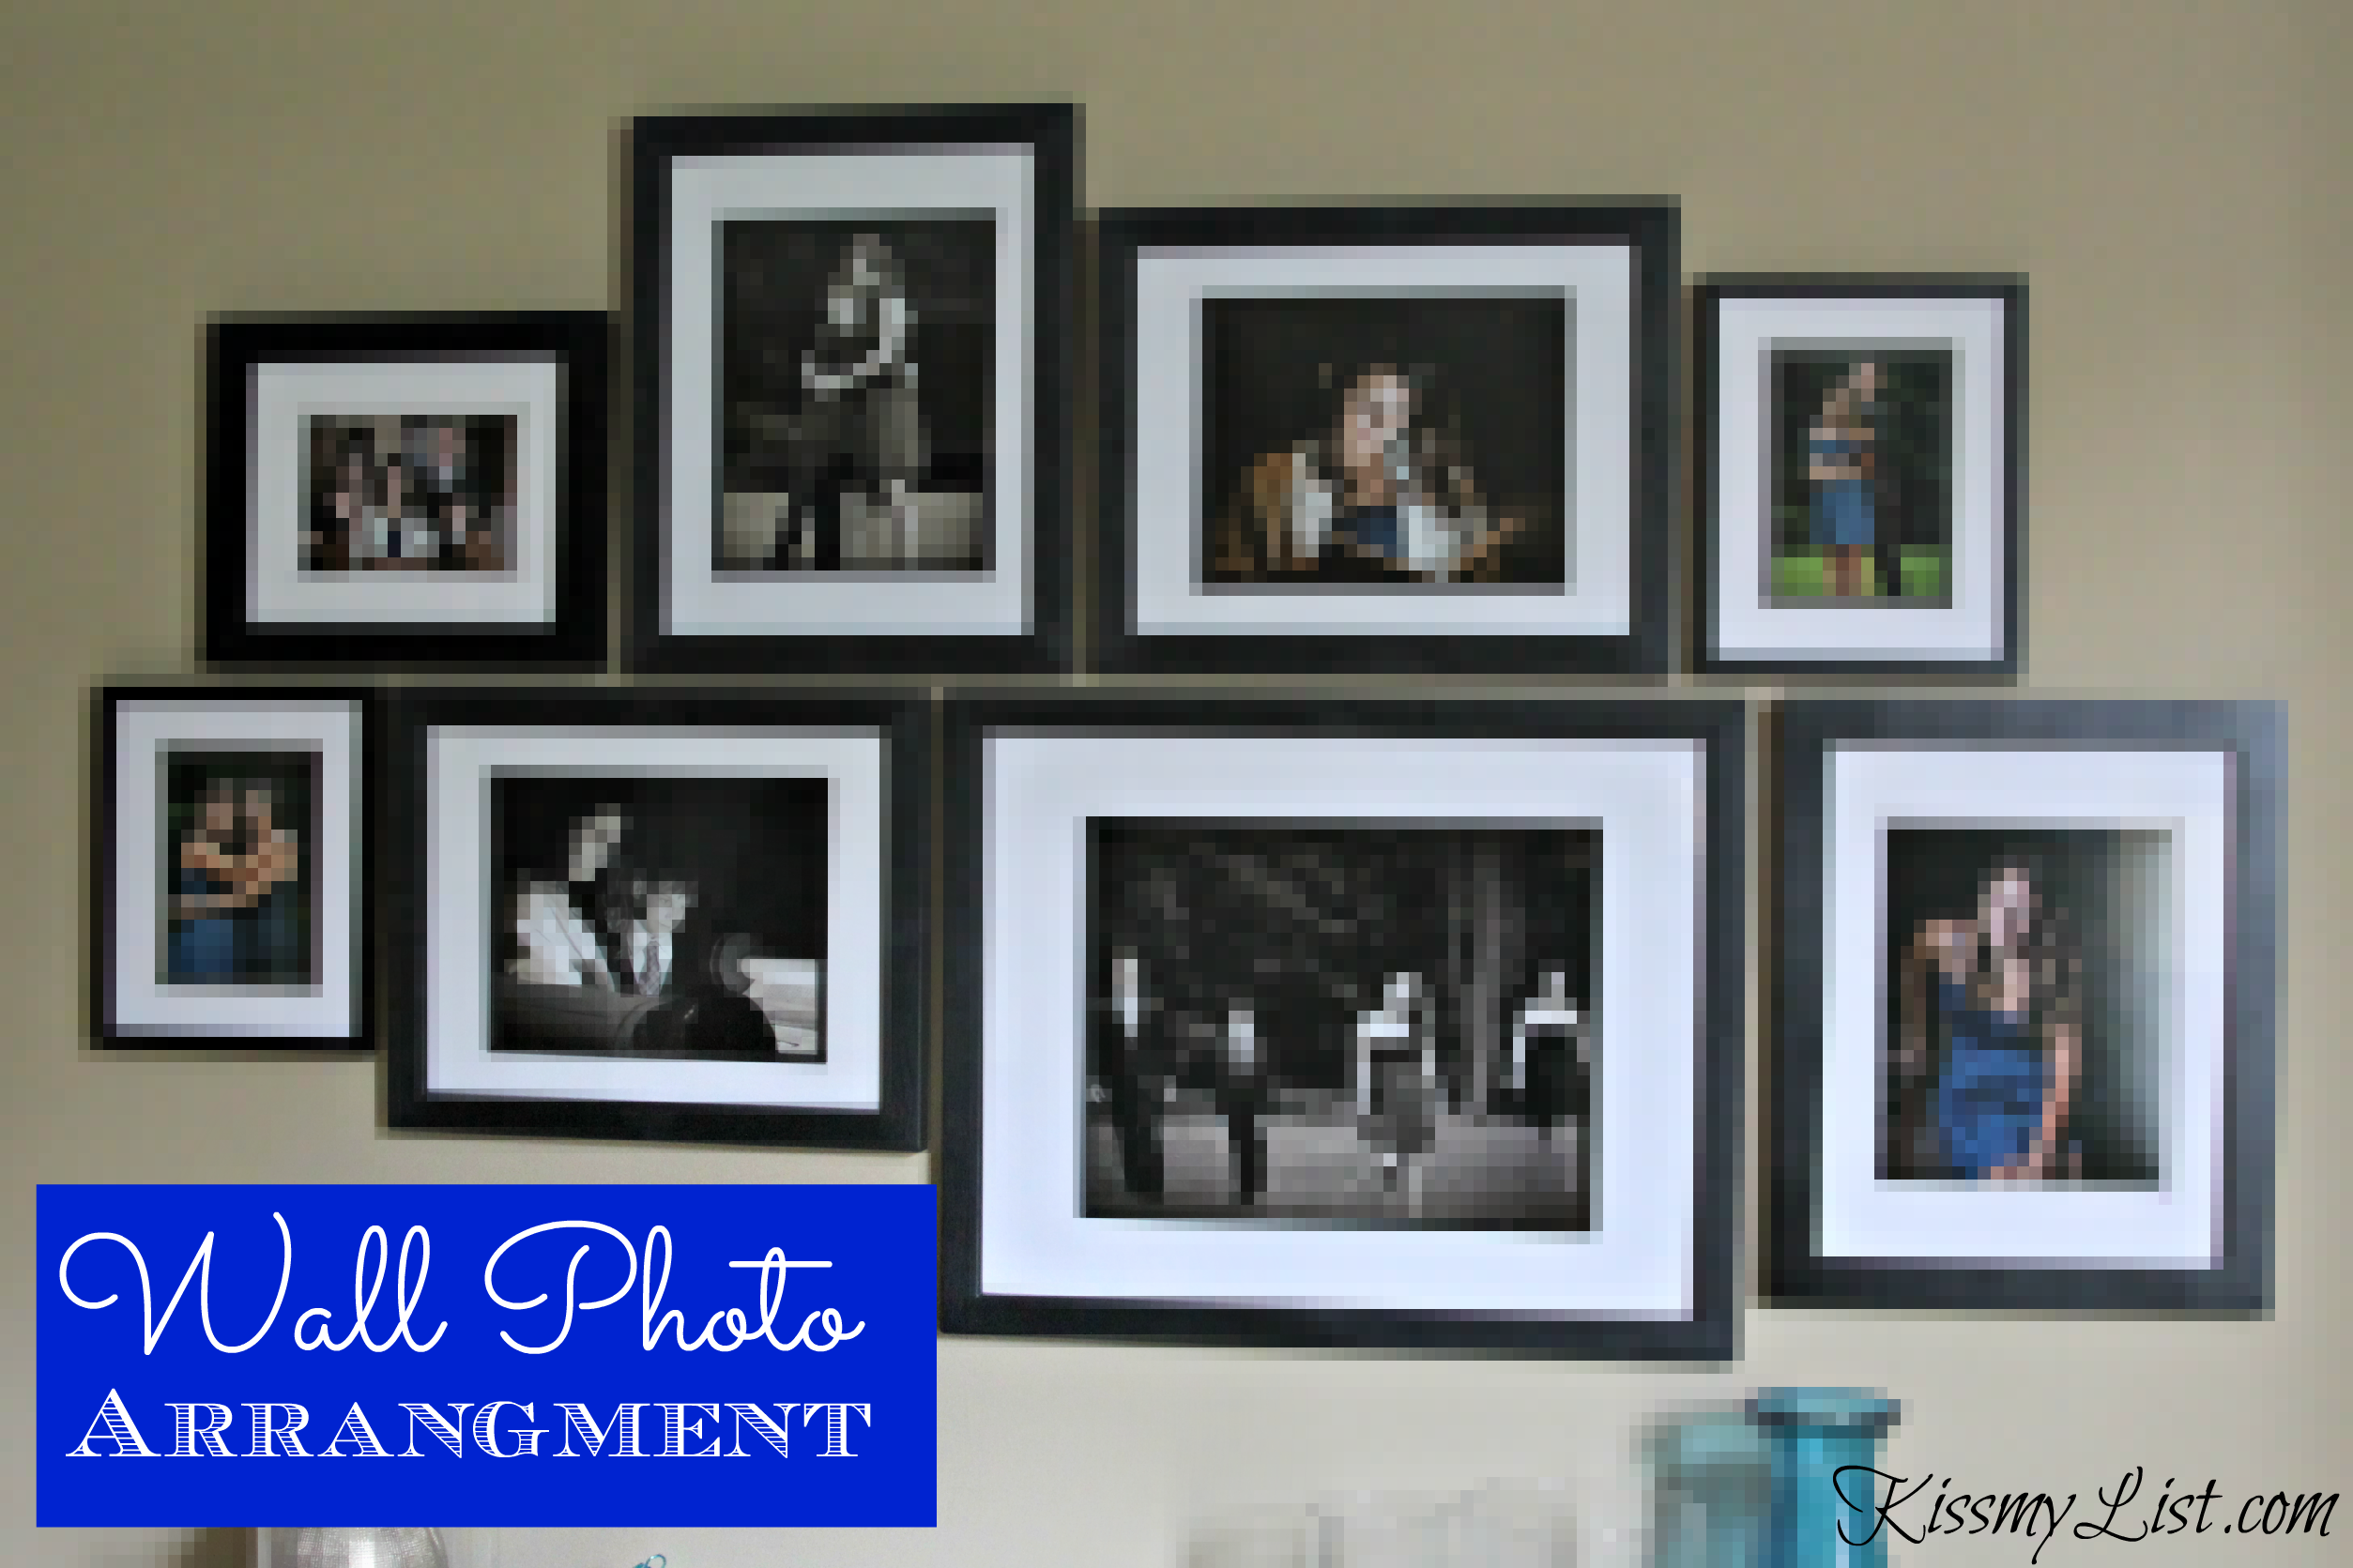 how to make a wall photo arrangement kiss my list